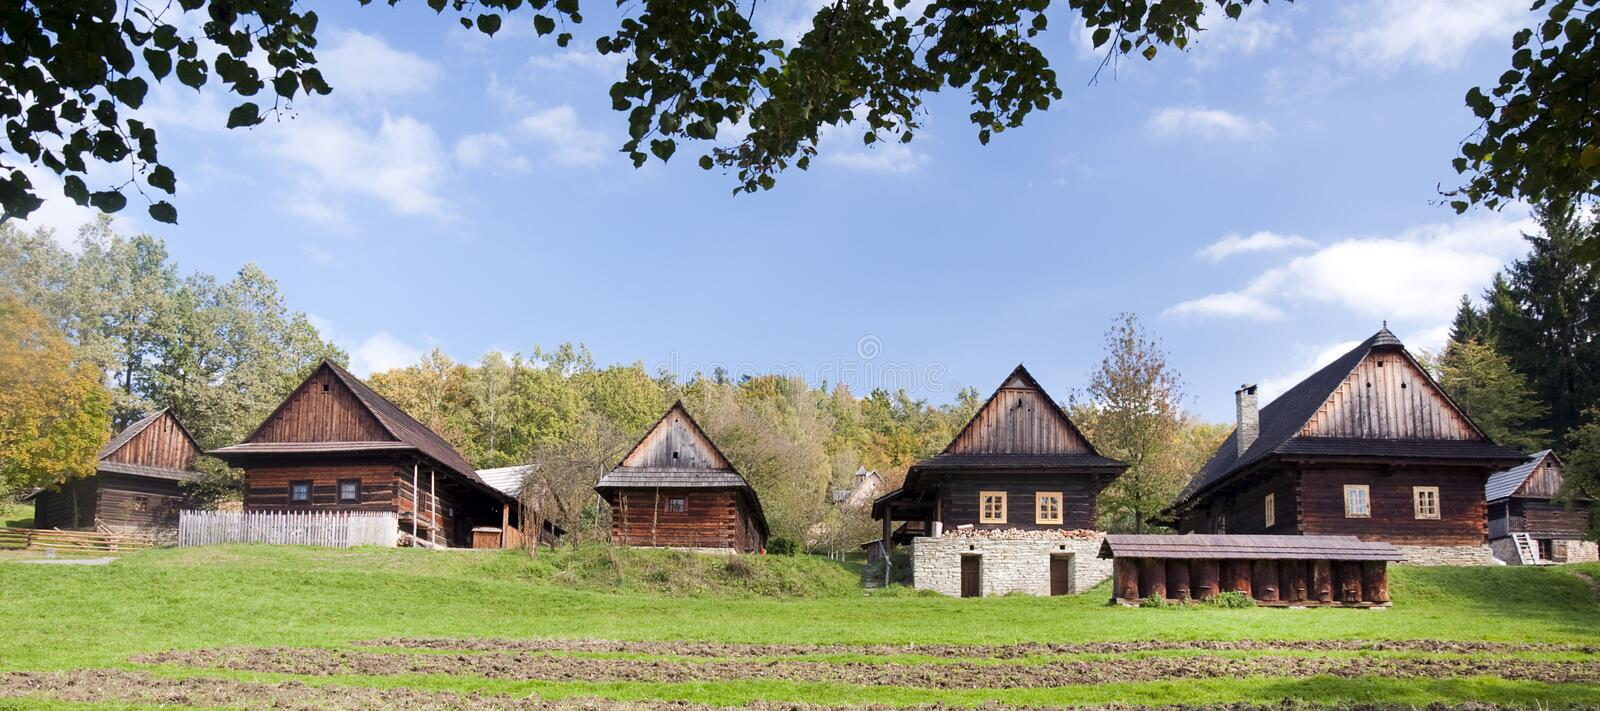 Download Cottages in countryside stock photo. Image of republic - 19282740